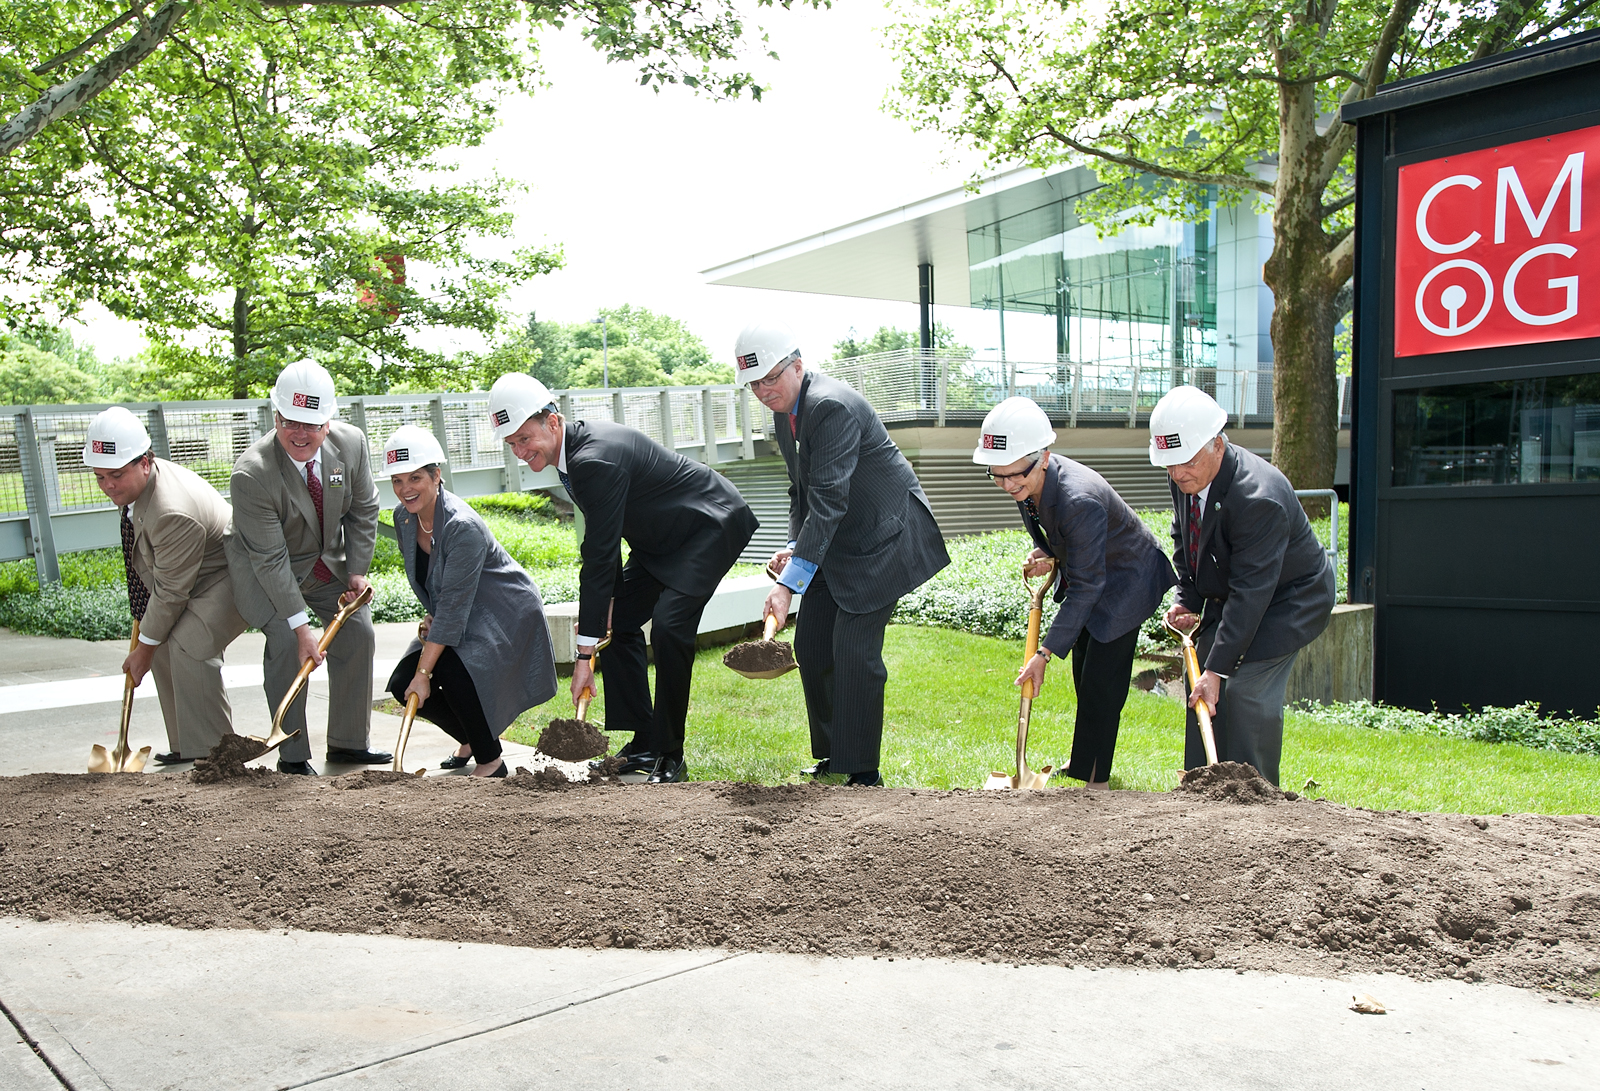 Groundbreaking for the North Wing expansion at The Corning Museum of Glass